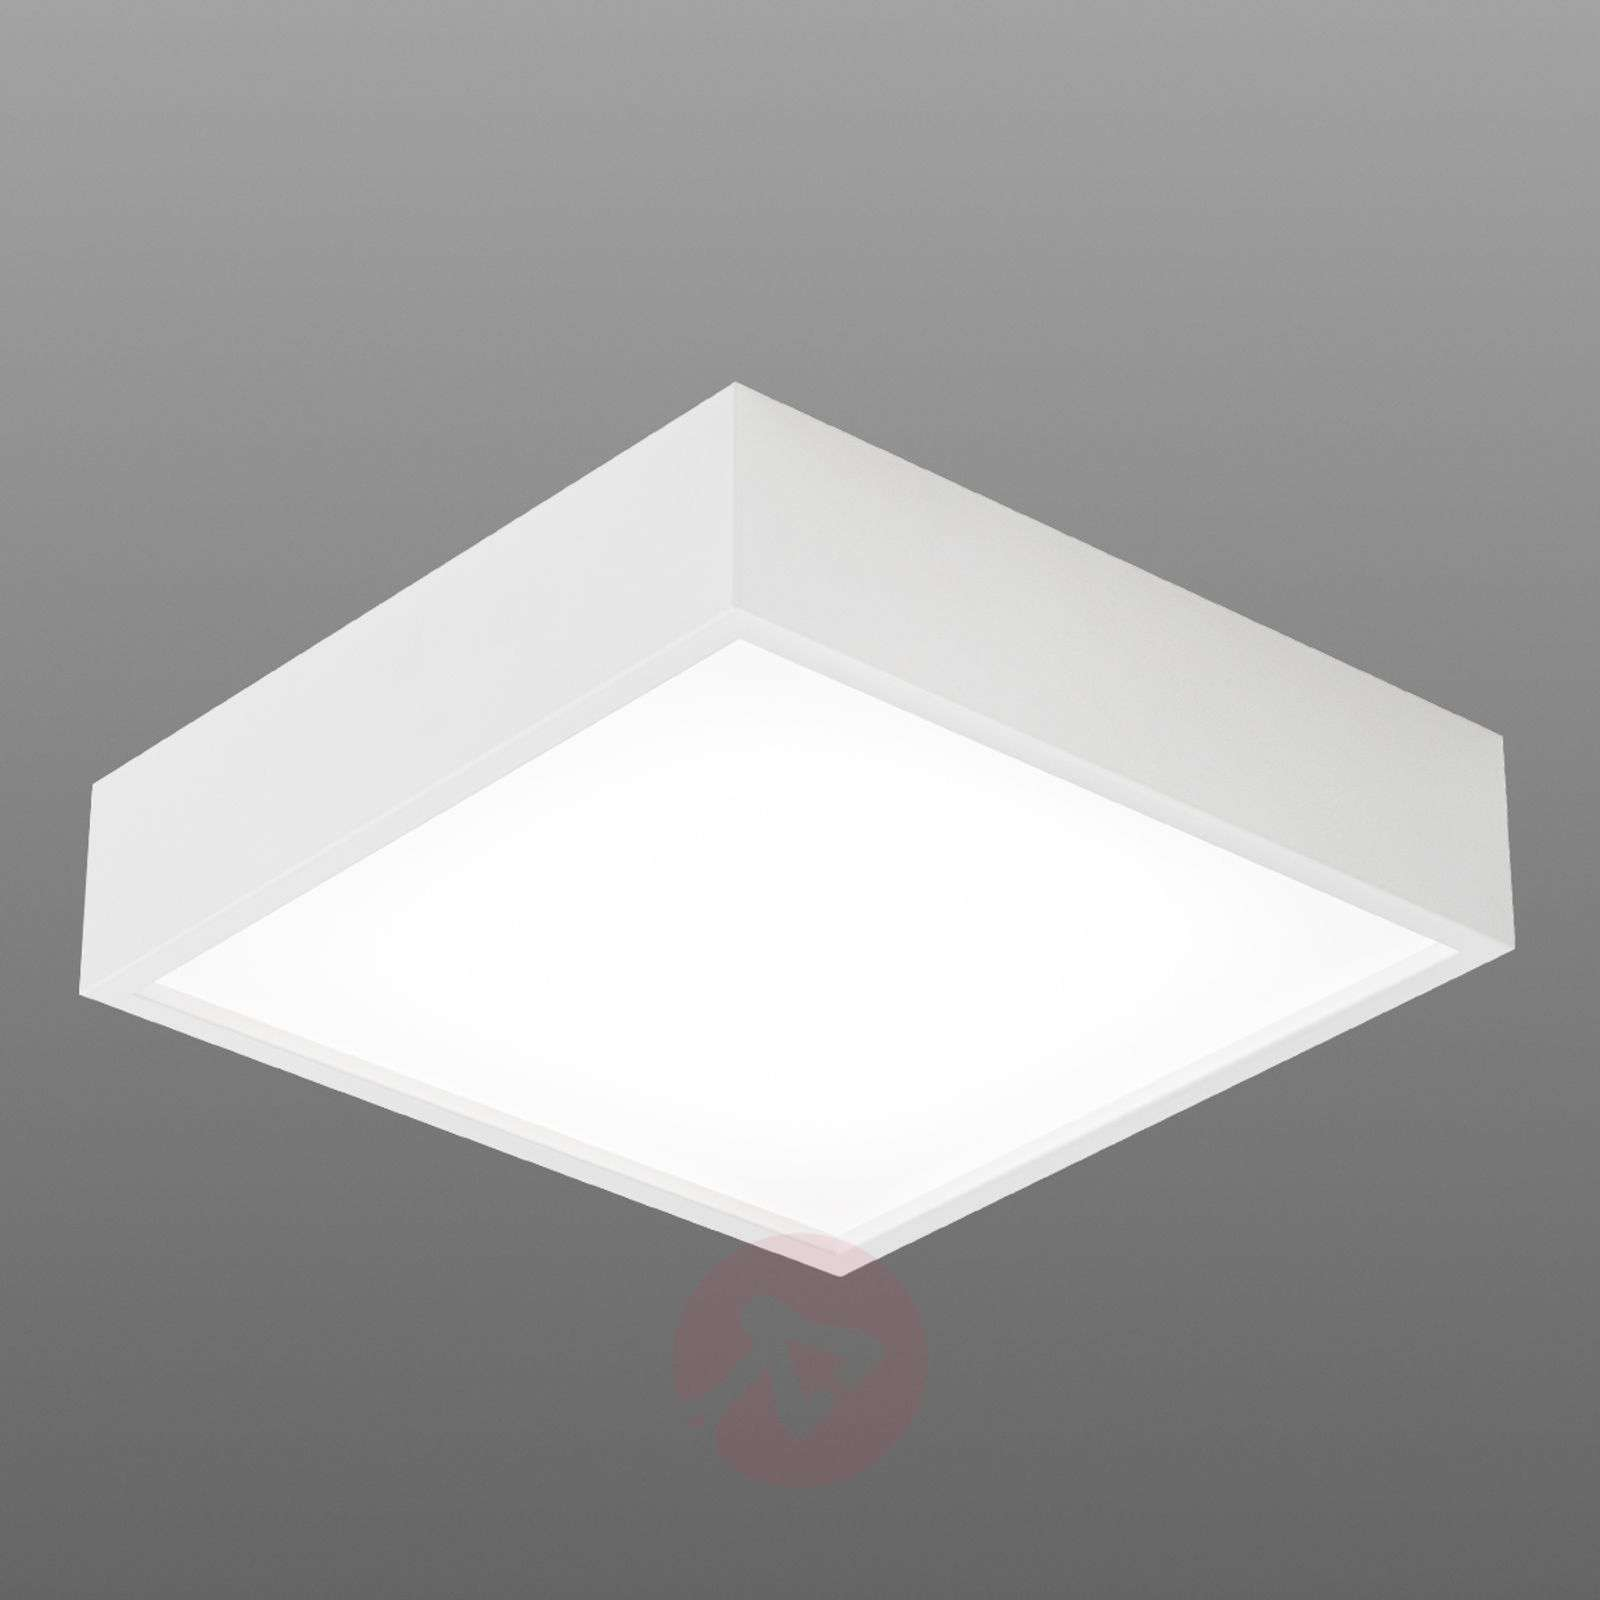 Bright ceiling lamp module sq led white lights bright ceiling lamp module sq led white 6040183 01 aloadofball Images